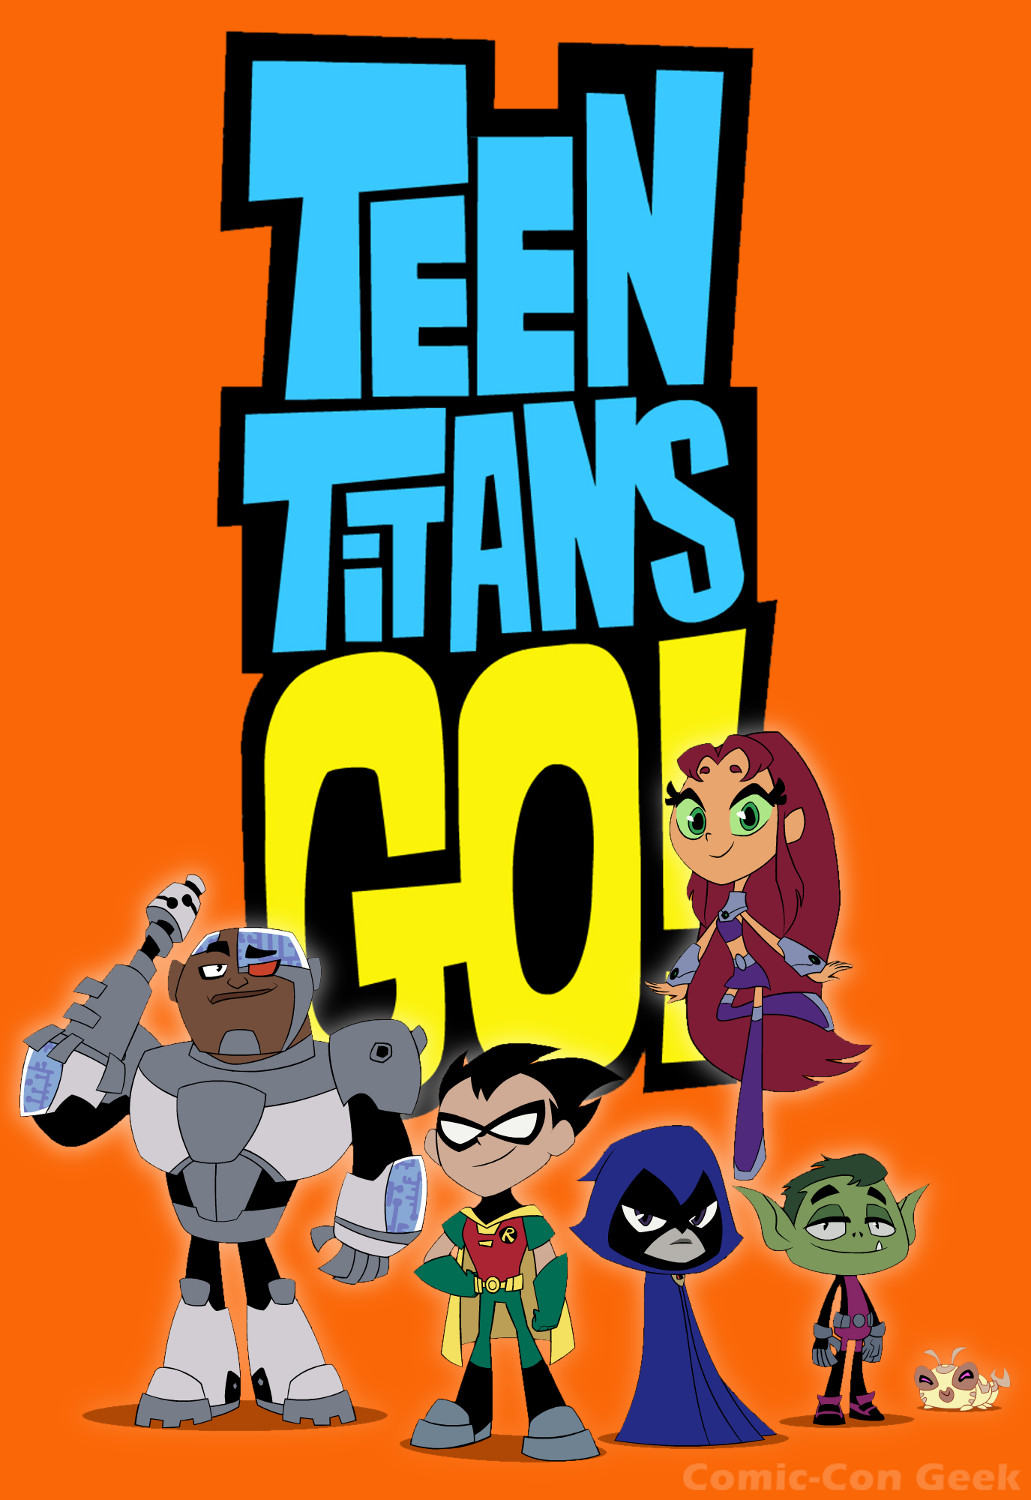 Teen titans the cartoon